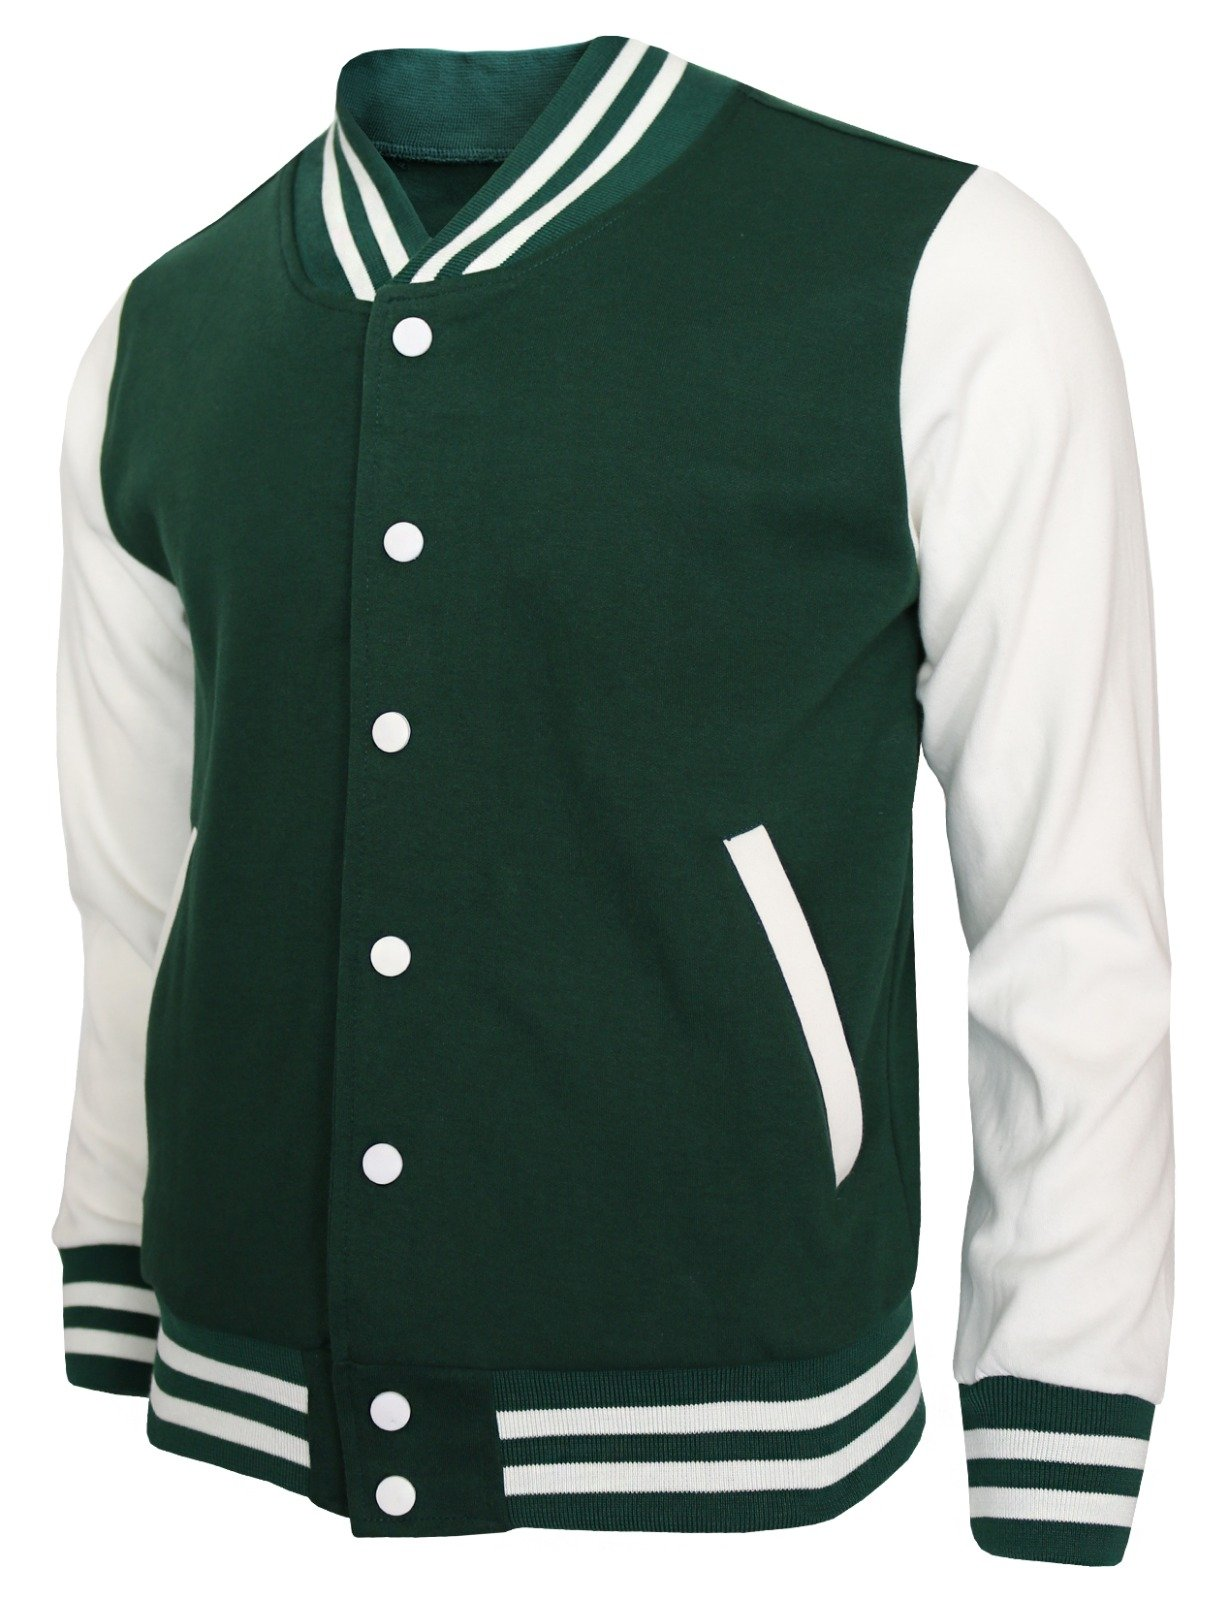 BCPOLO Baseball Jacket Varsity Baseball Cotton Jacket Letterman jacket 8 Colors-green XL US by BCPOLO